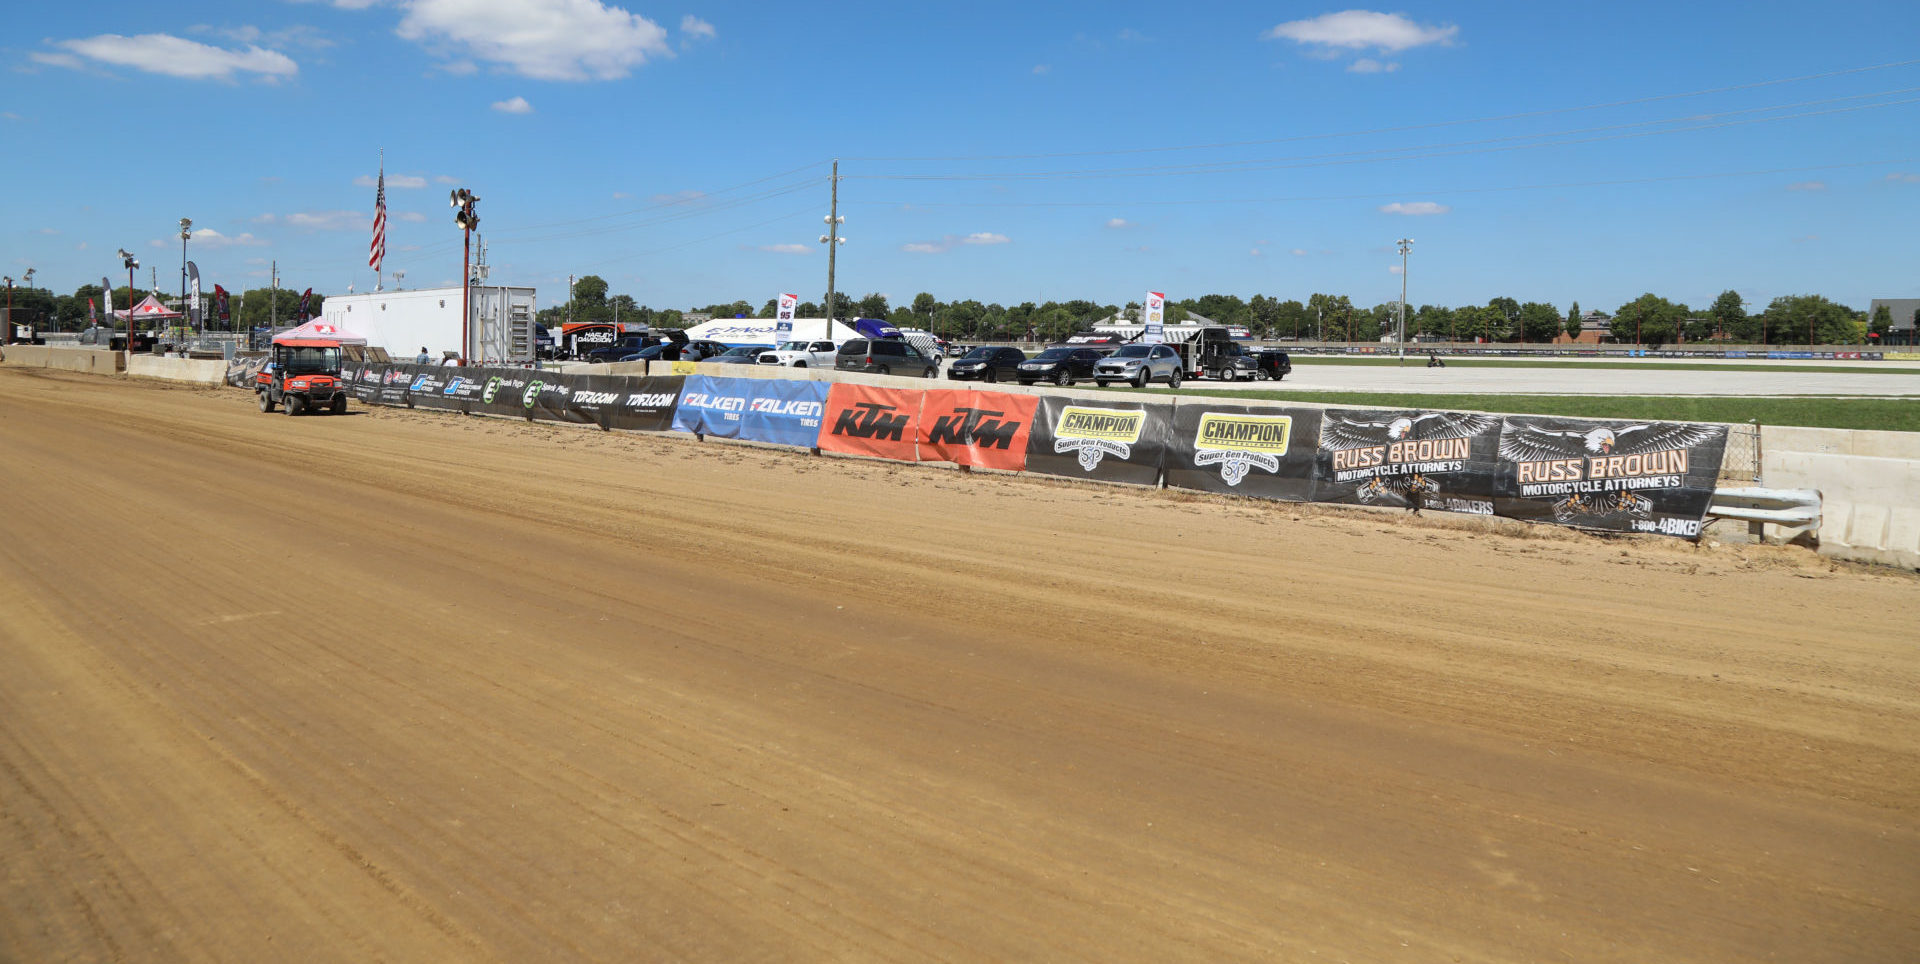 The Indy Mile at the Indiana State Fairgrounds, in Indianapolis, Indiana. Photo by Scott Hunter, courtesy AFT.